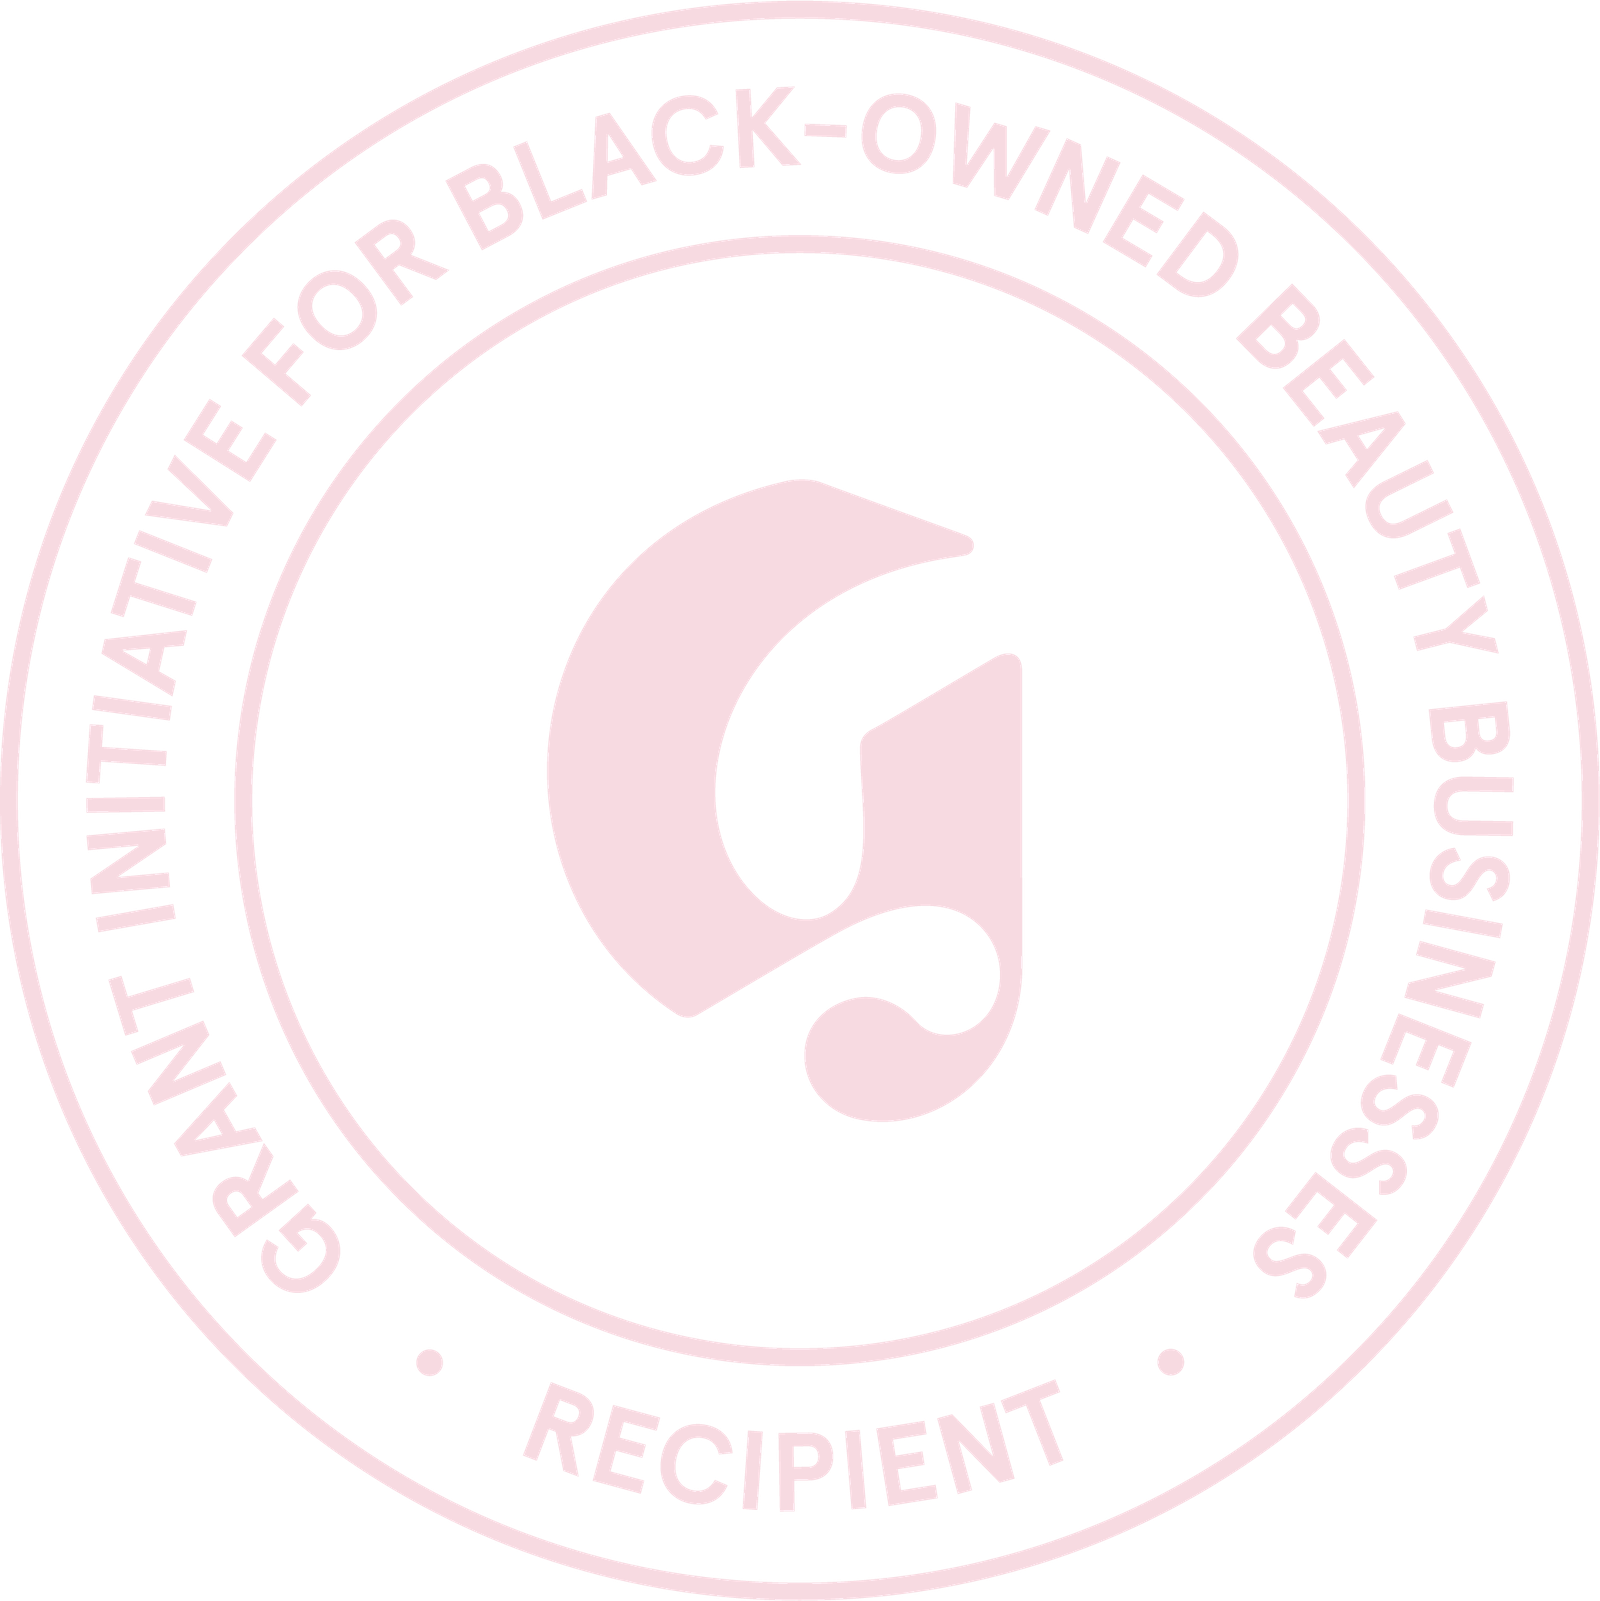 Meet the recipients of our Grant Initiative for Black-Owned Beauty Businesses!